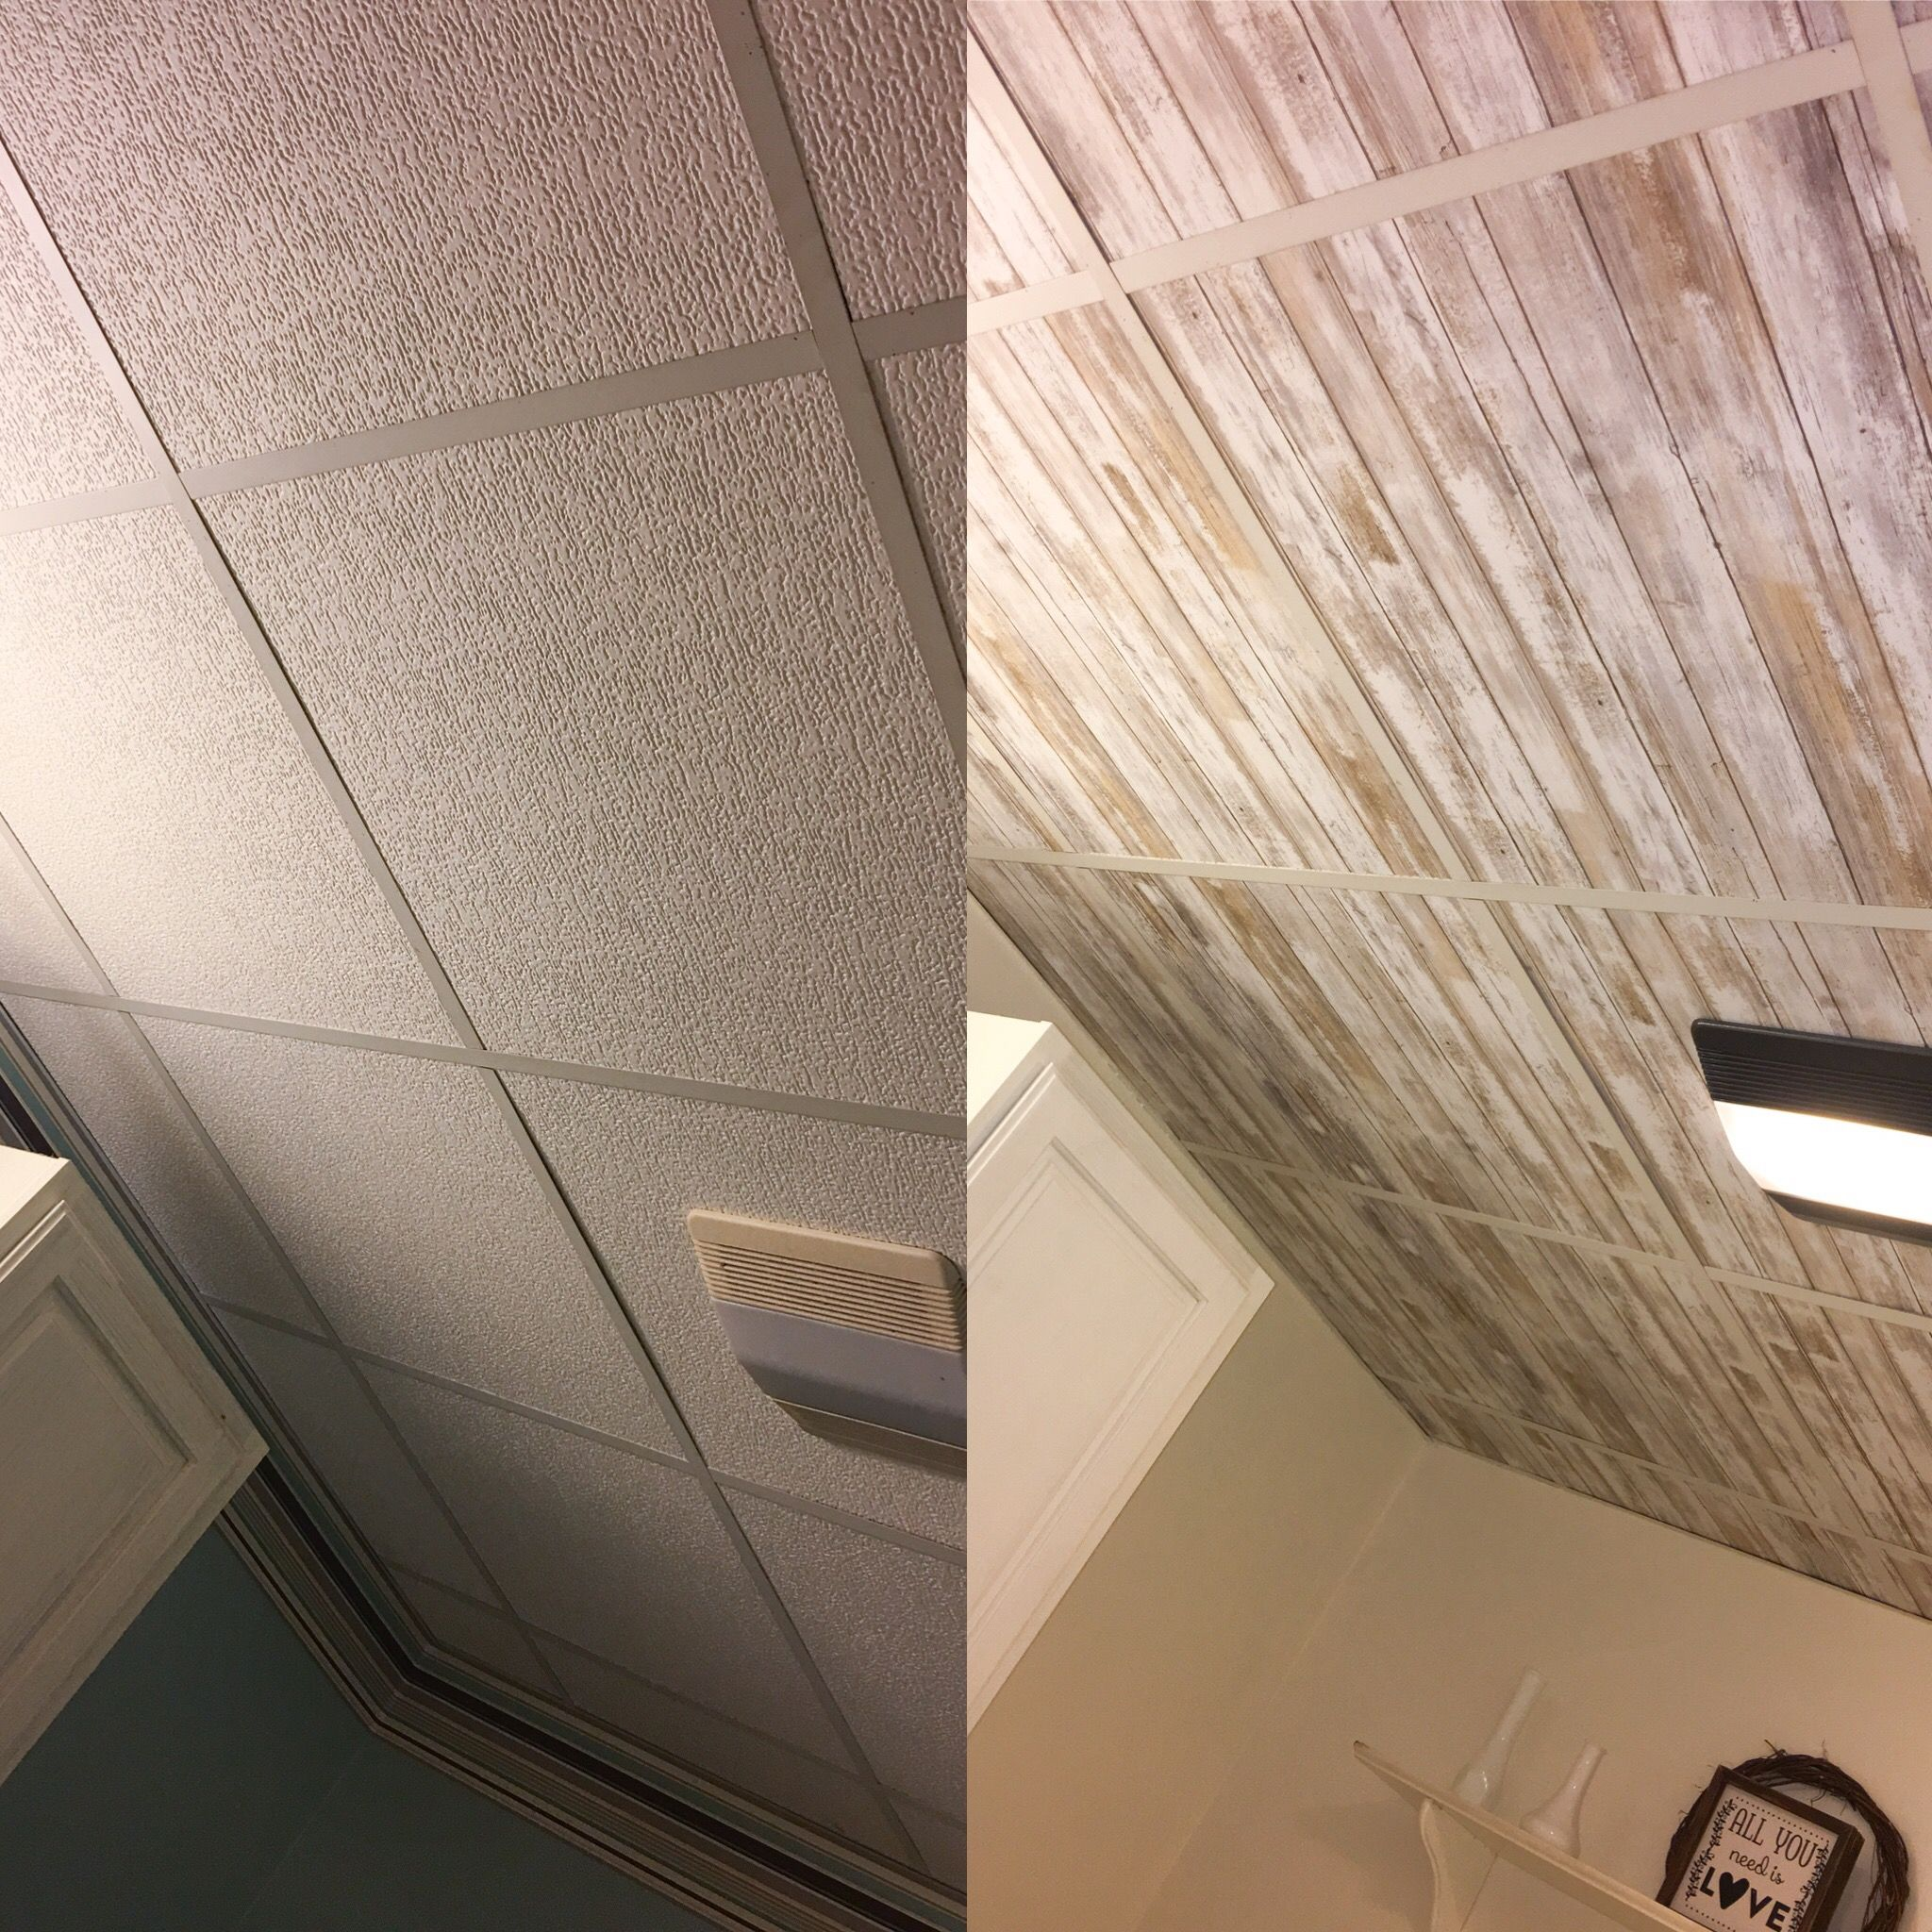 Wallpapered drop ceiling update drop ceilings with peel and stick ceiling tiles dailygadgetfo Image collections